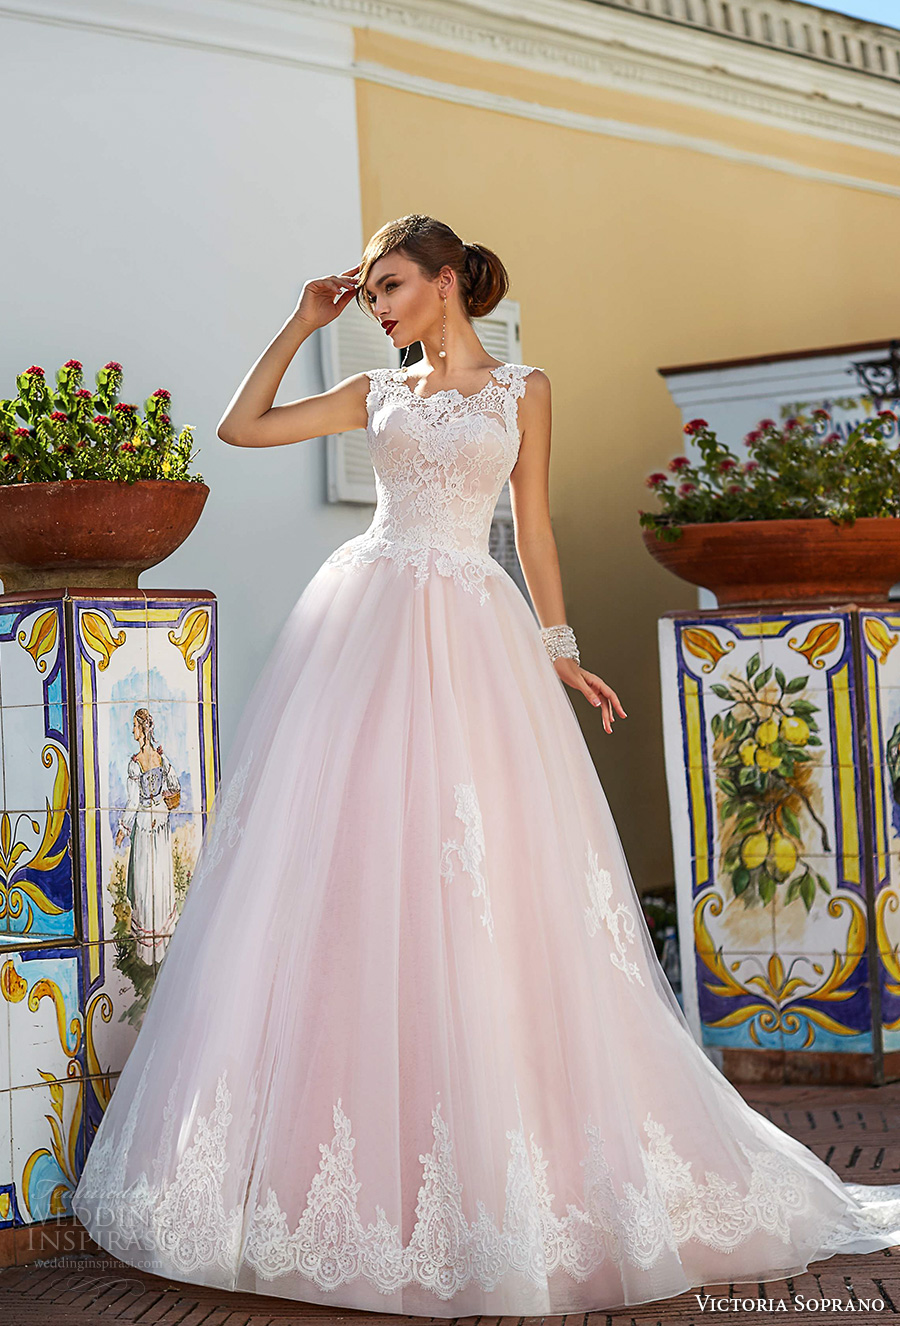 victoria soprano 2017 bridal sleeveless thick strap round neck heavily embellished bodice romantic princess pink ball gown a  line wedding dress corset back chapel train (4) mv